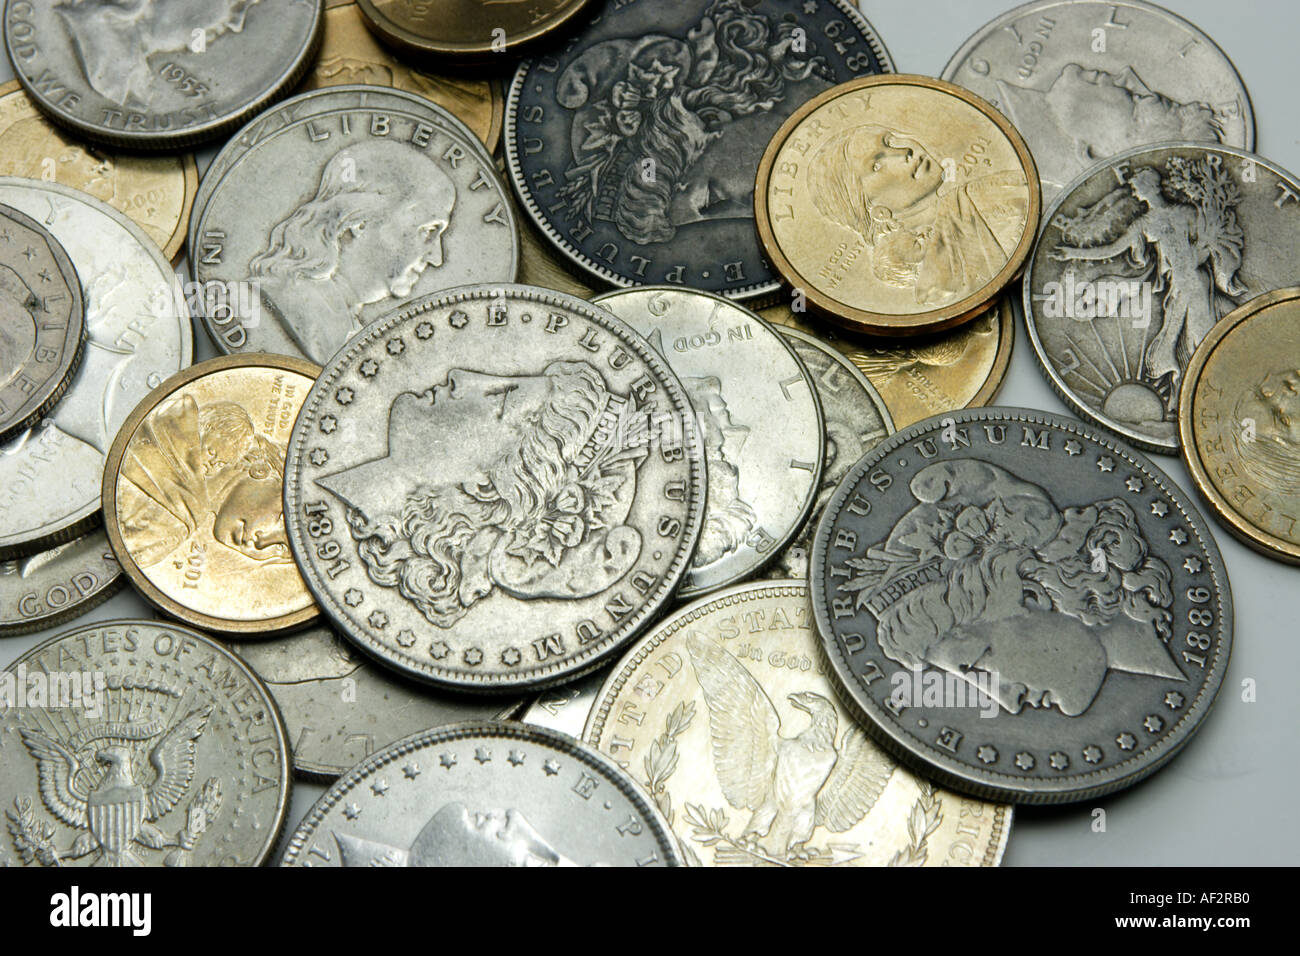 US Dollar and Half Dollar coins new and old silver and ...